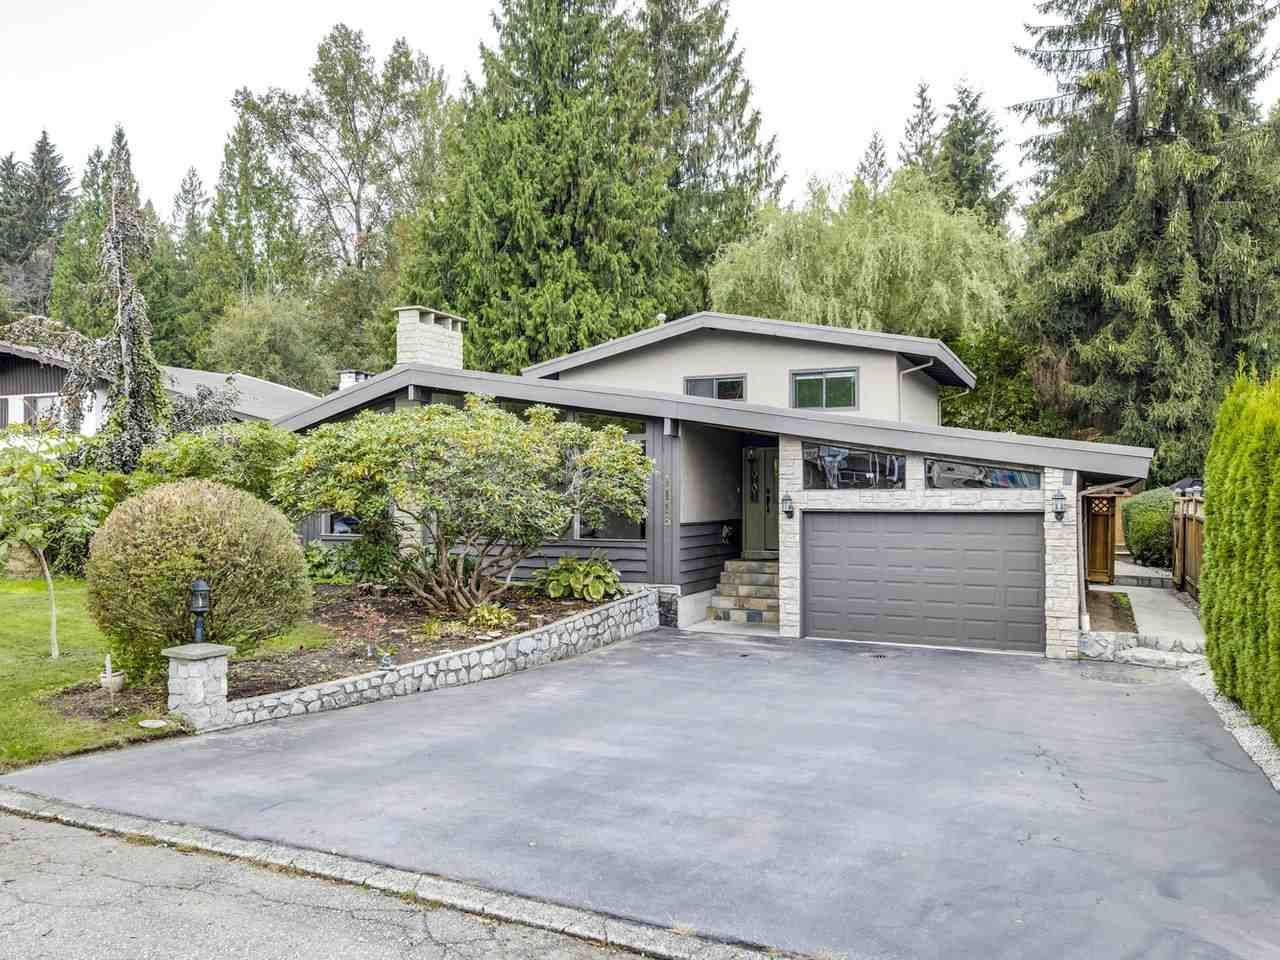 "Main Photo: 1113 BLUE HERON Crescent in Port Coquitlam: Lincoln Park PQ House for sale in ""LINCOLN PARK PQ"" : MLS®# R2509725"